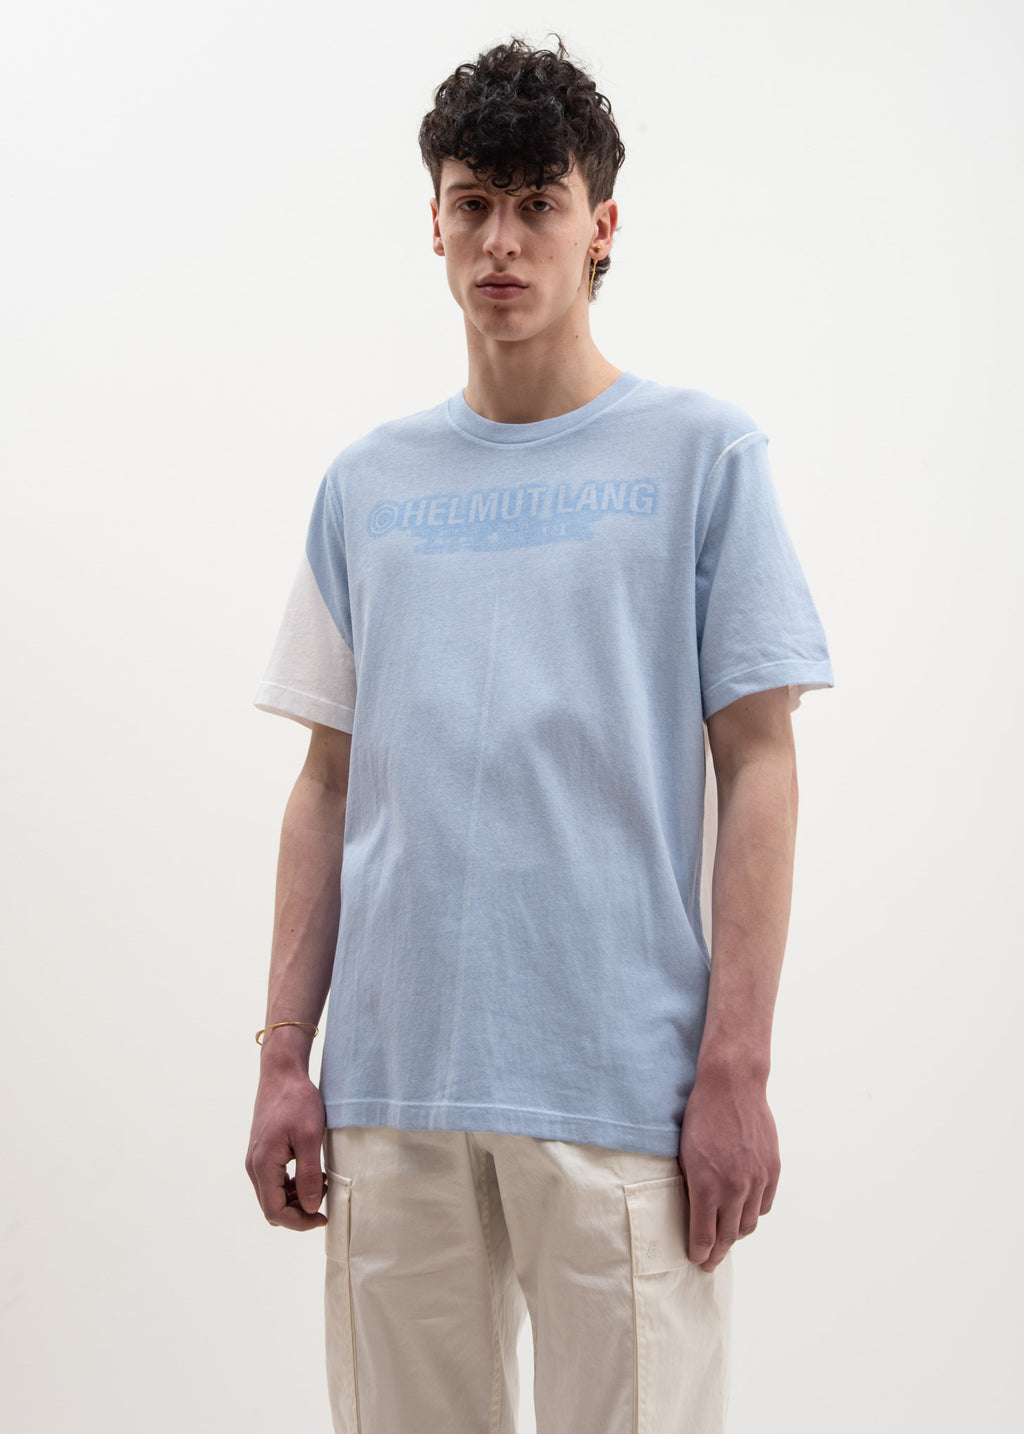 Helmut Lang, White Sky Square T-Shirt, 017 Shop